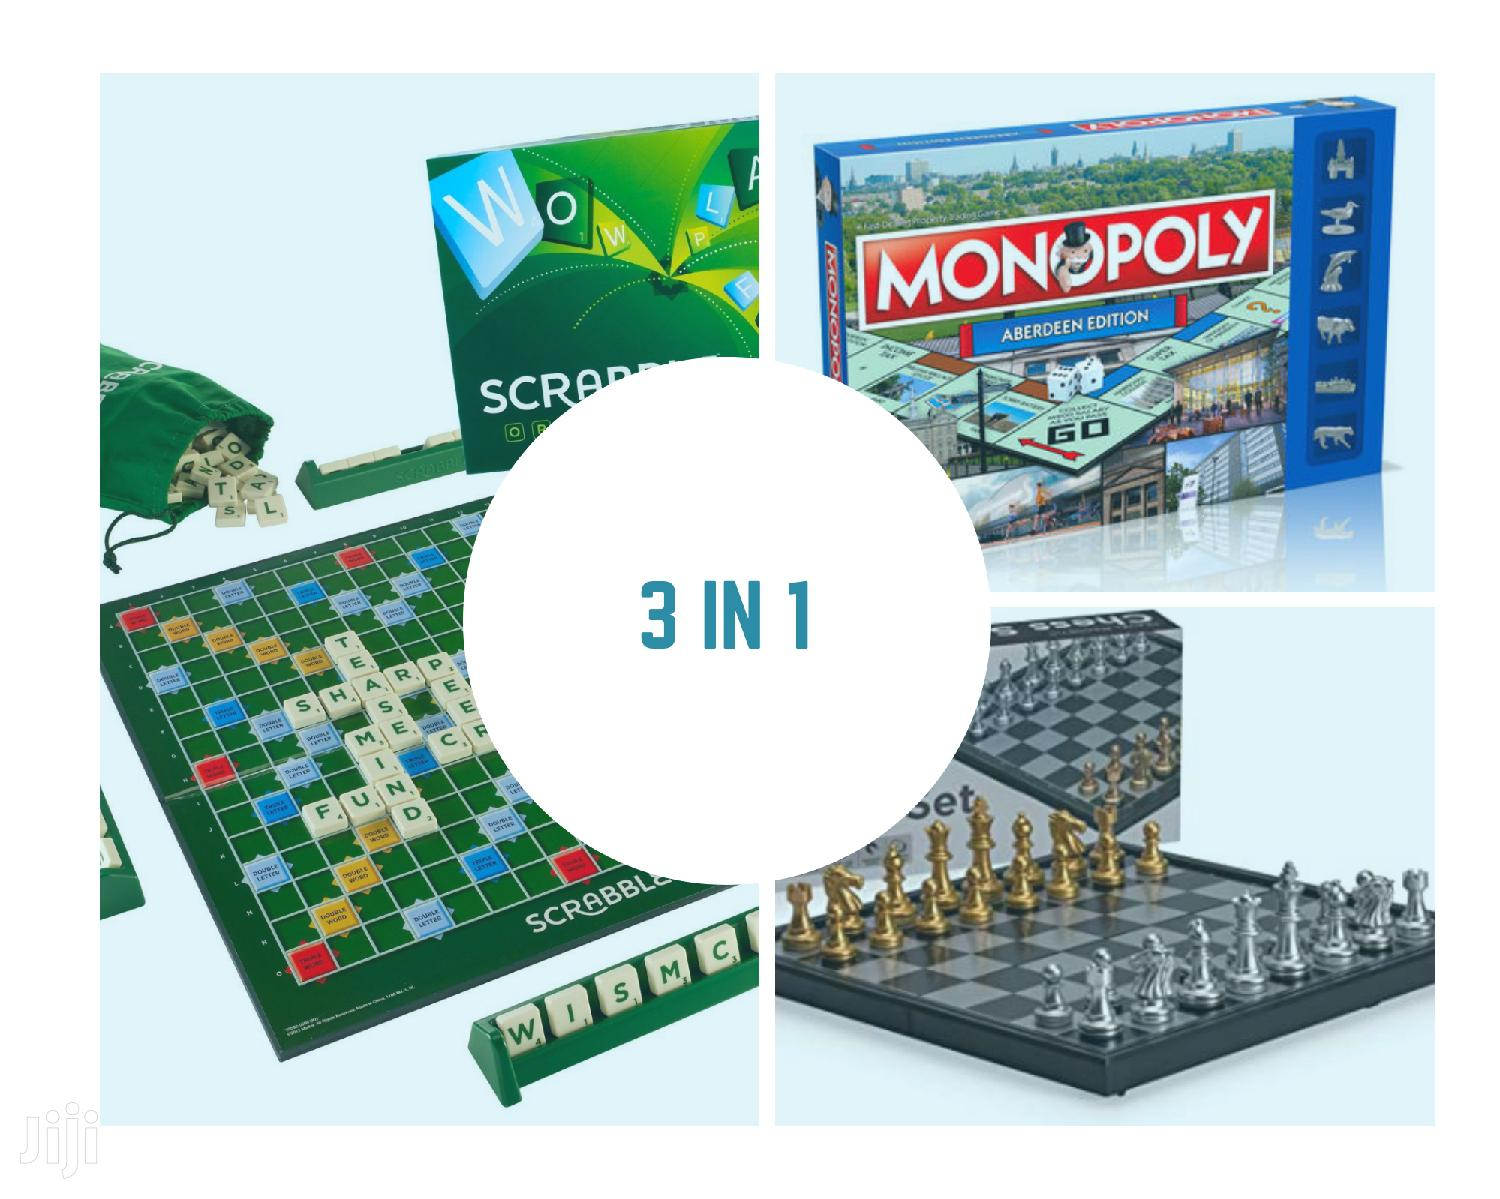 Queen Size Package Scrabble, Chess Monopoly